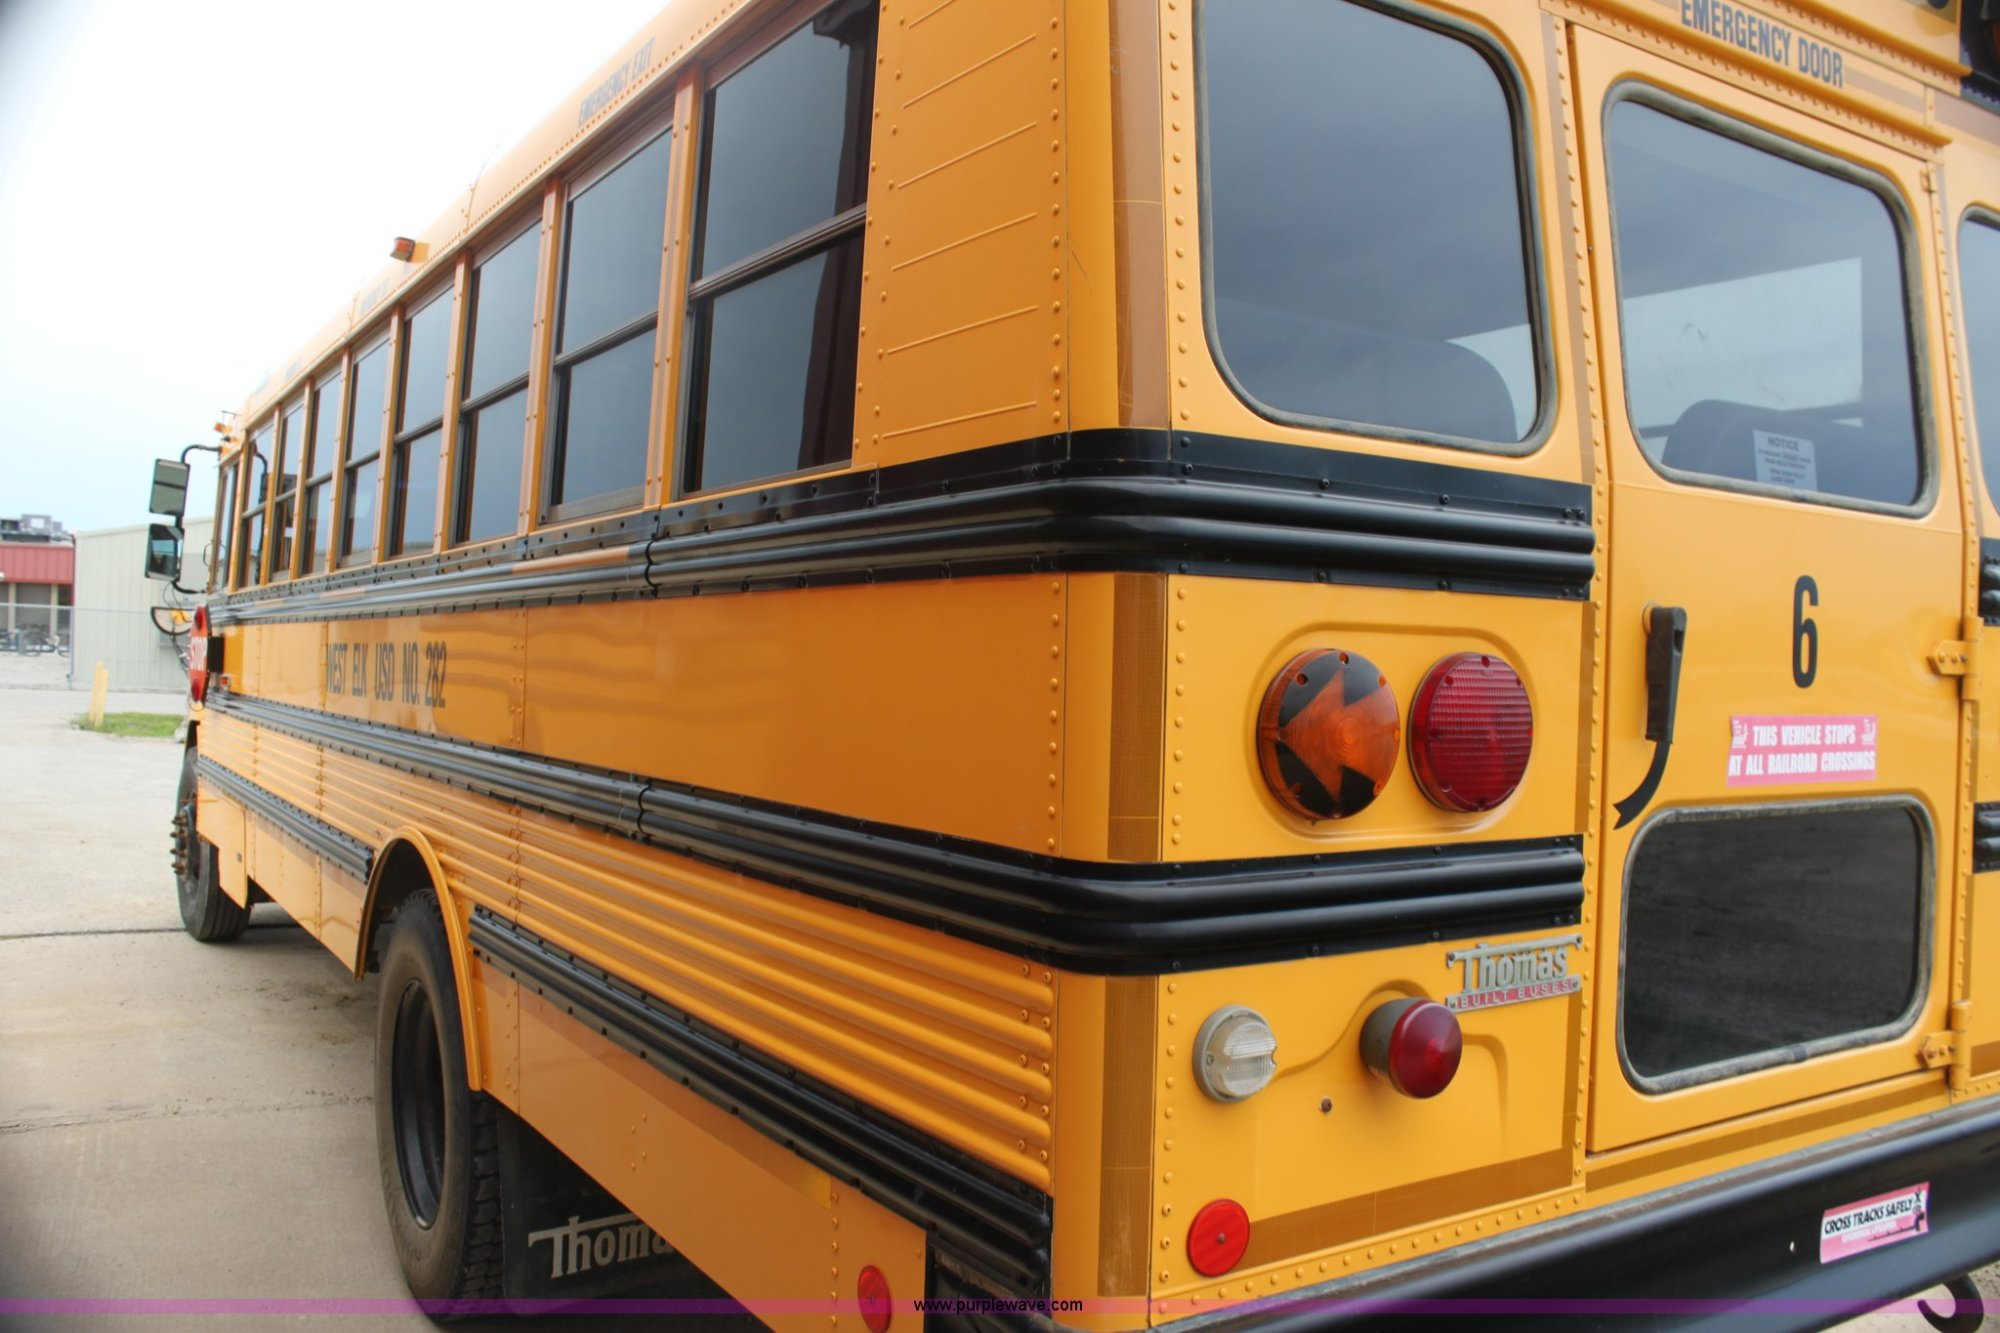 hight resolution of please provide a thome freightliner bus wiring 2001 freightliner fs65 thomas built bus item e8490 on